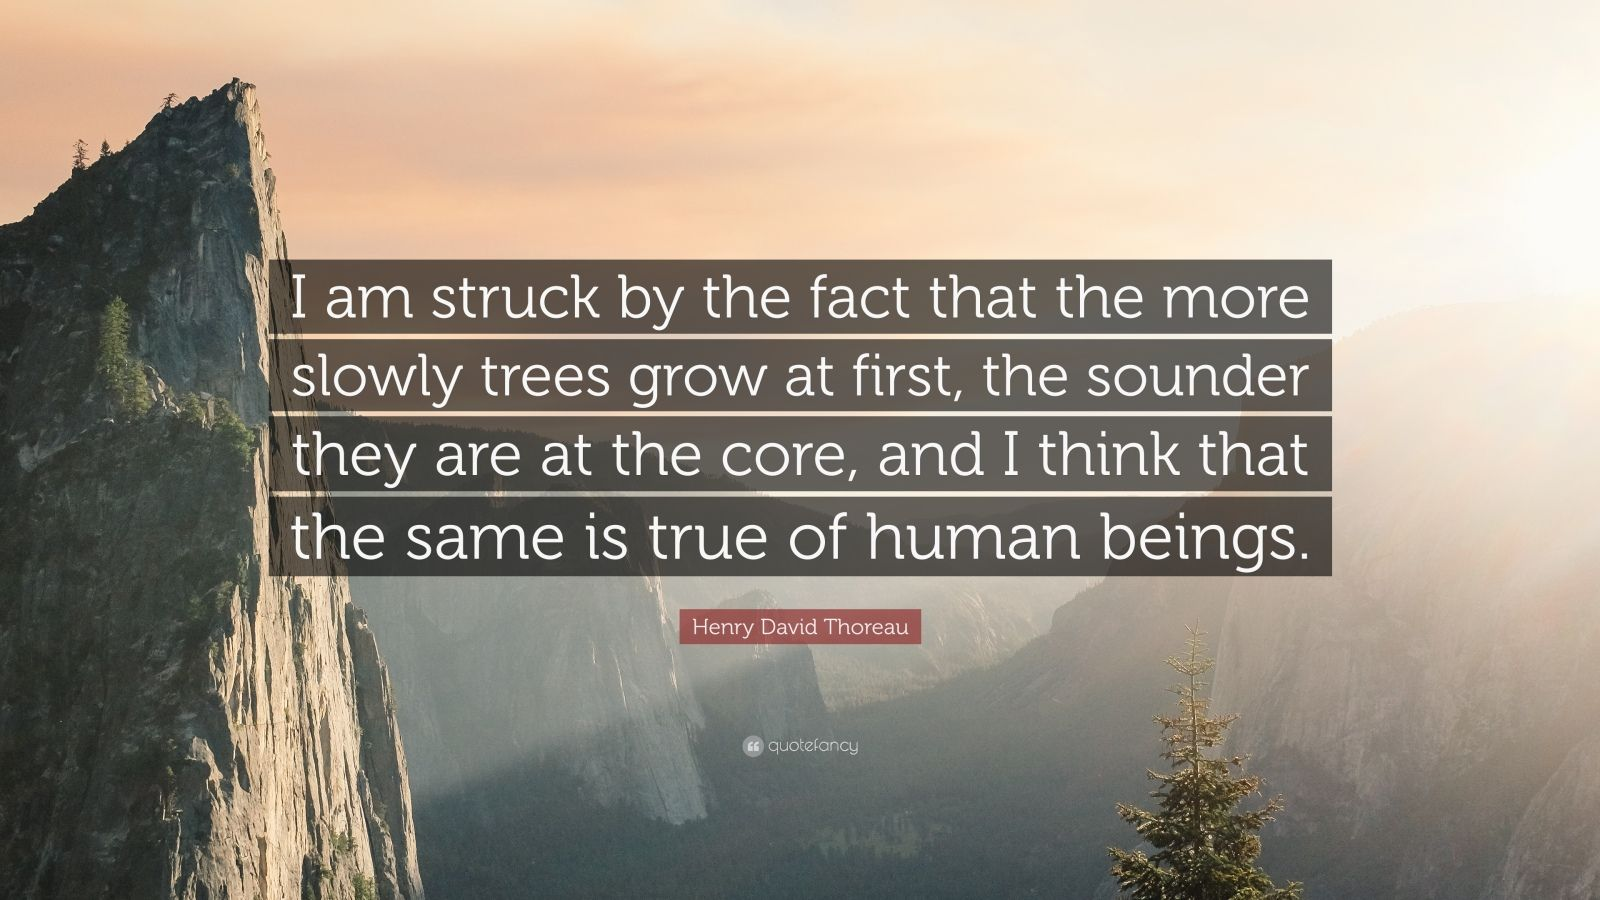 """Henry David Thoreau Quote: """"I am struck by the fact that the more slowly trees grow at first, the sounder they are at the core, and I think that the same is true of human beings."""""""